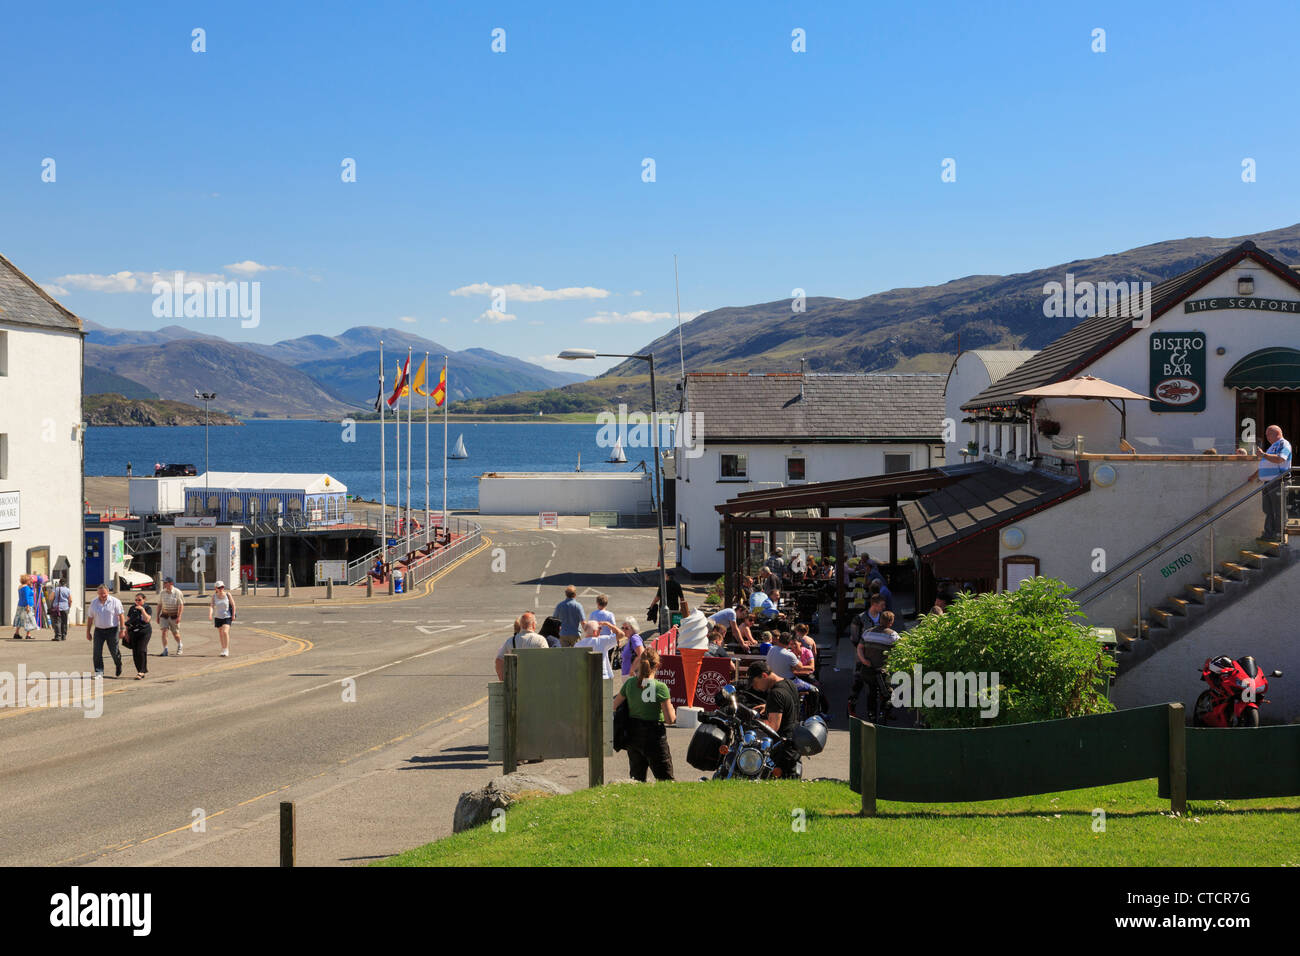 Bar and restaurant with people sitting outside in west highlands coast town on Loch Broom in summer. Ullapool Scotland - Stock Image